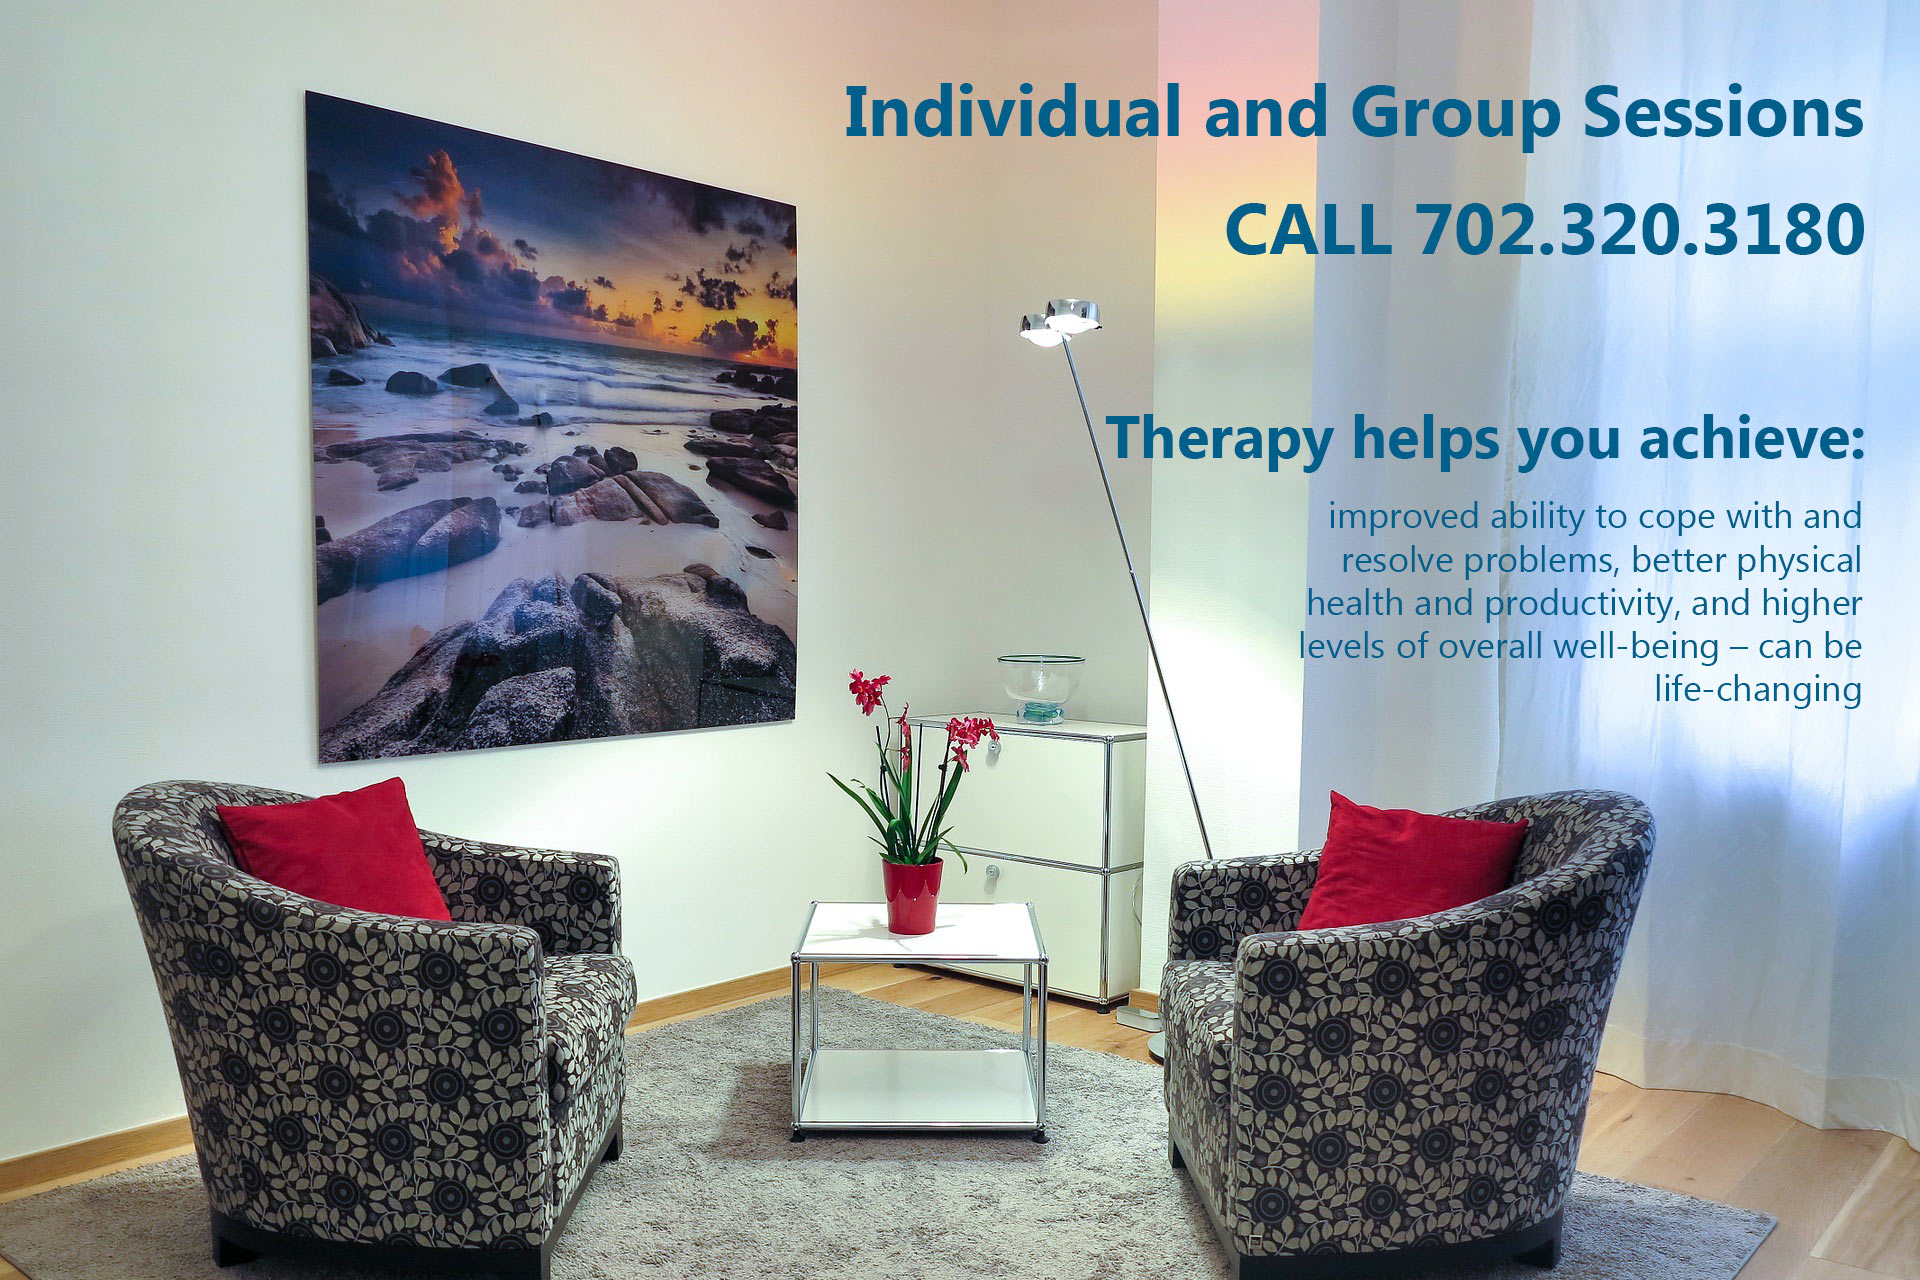 Family counseling and addition therapy in Las Vegas, Nevada. Online and remote consultations are available.